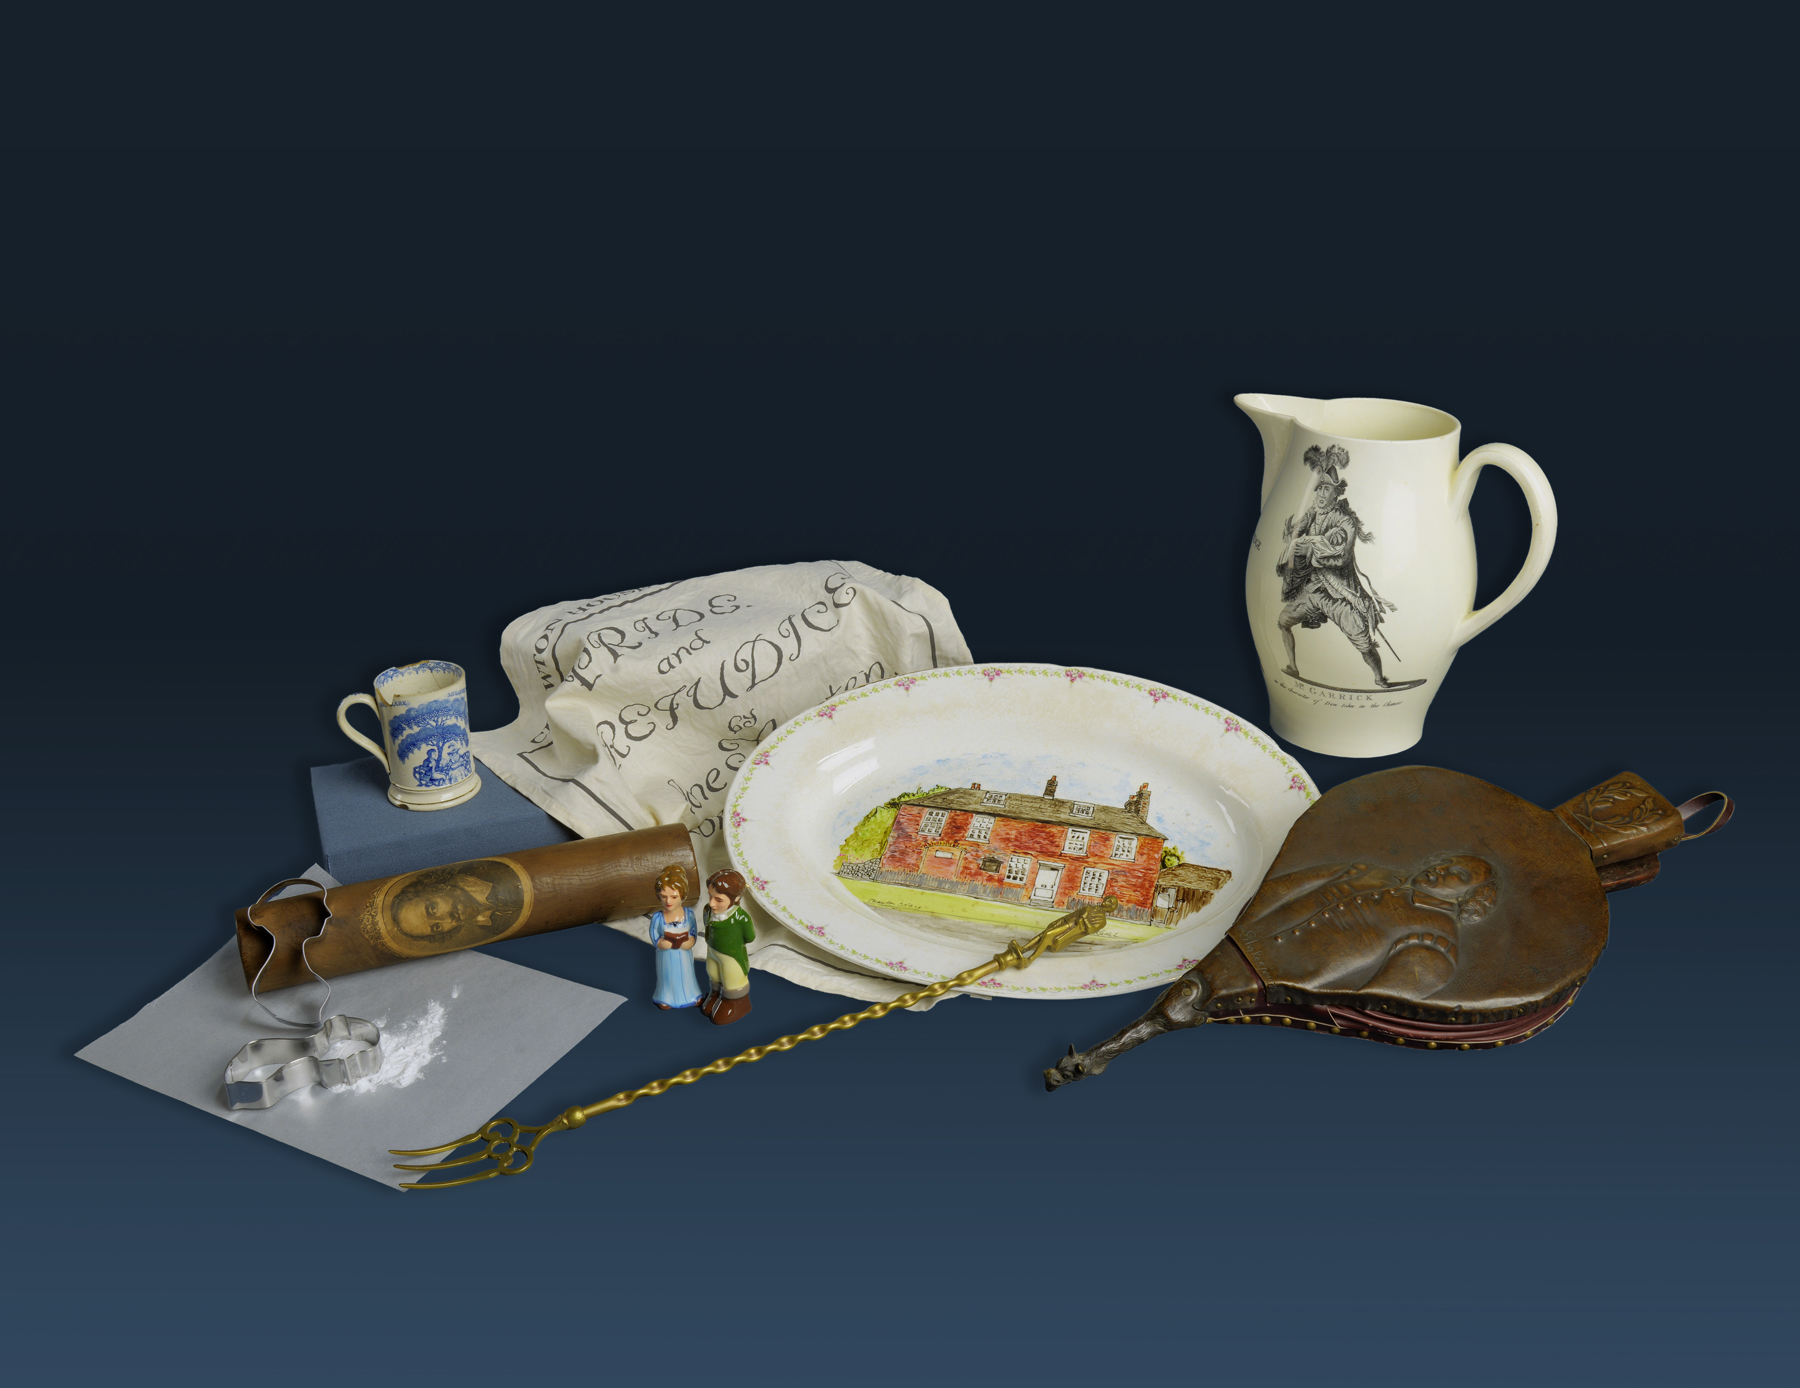 A collection of household items inspired by Shakespeare and Austen